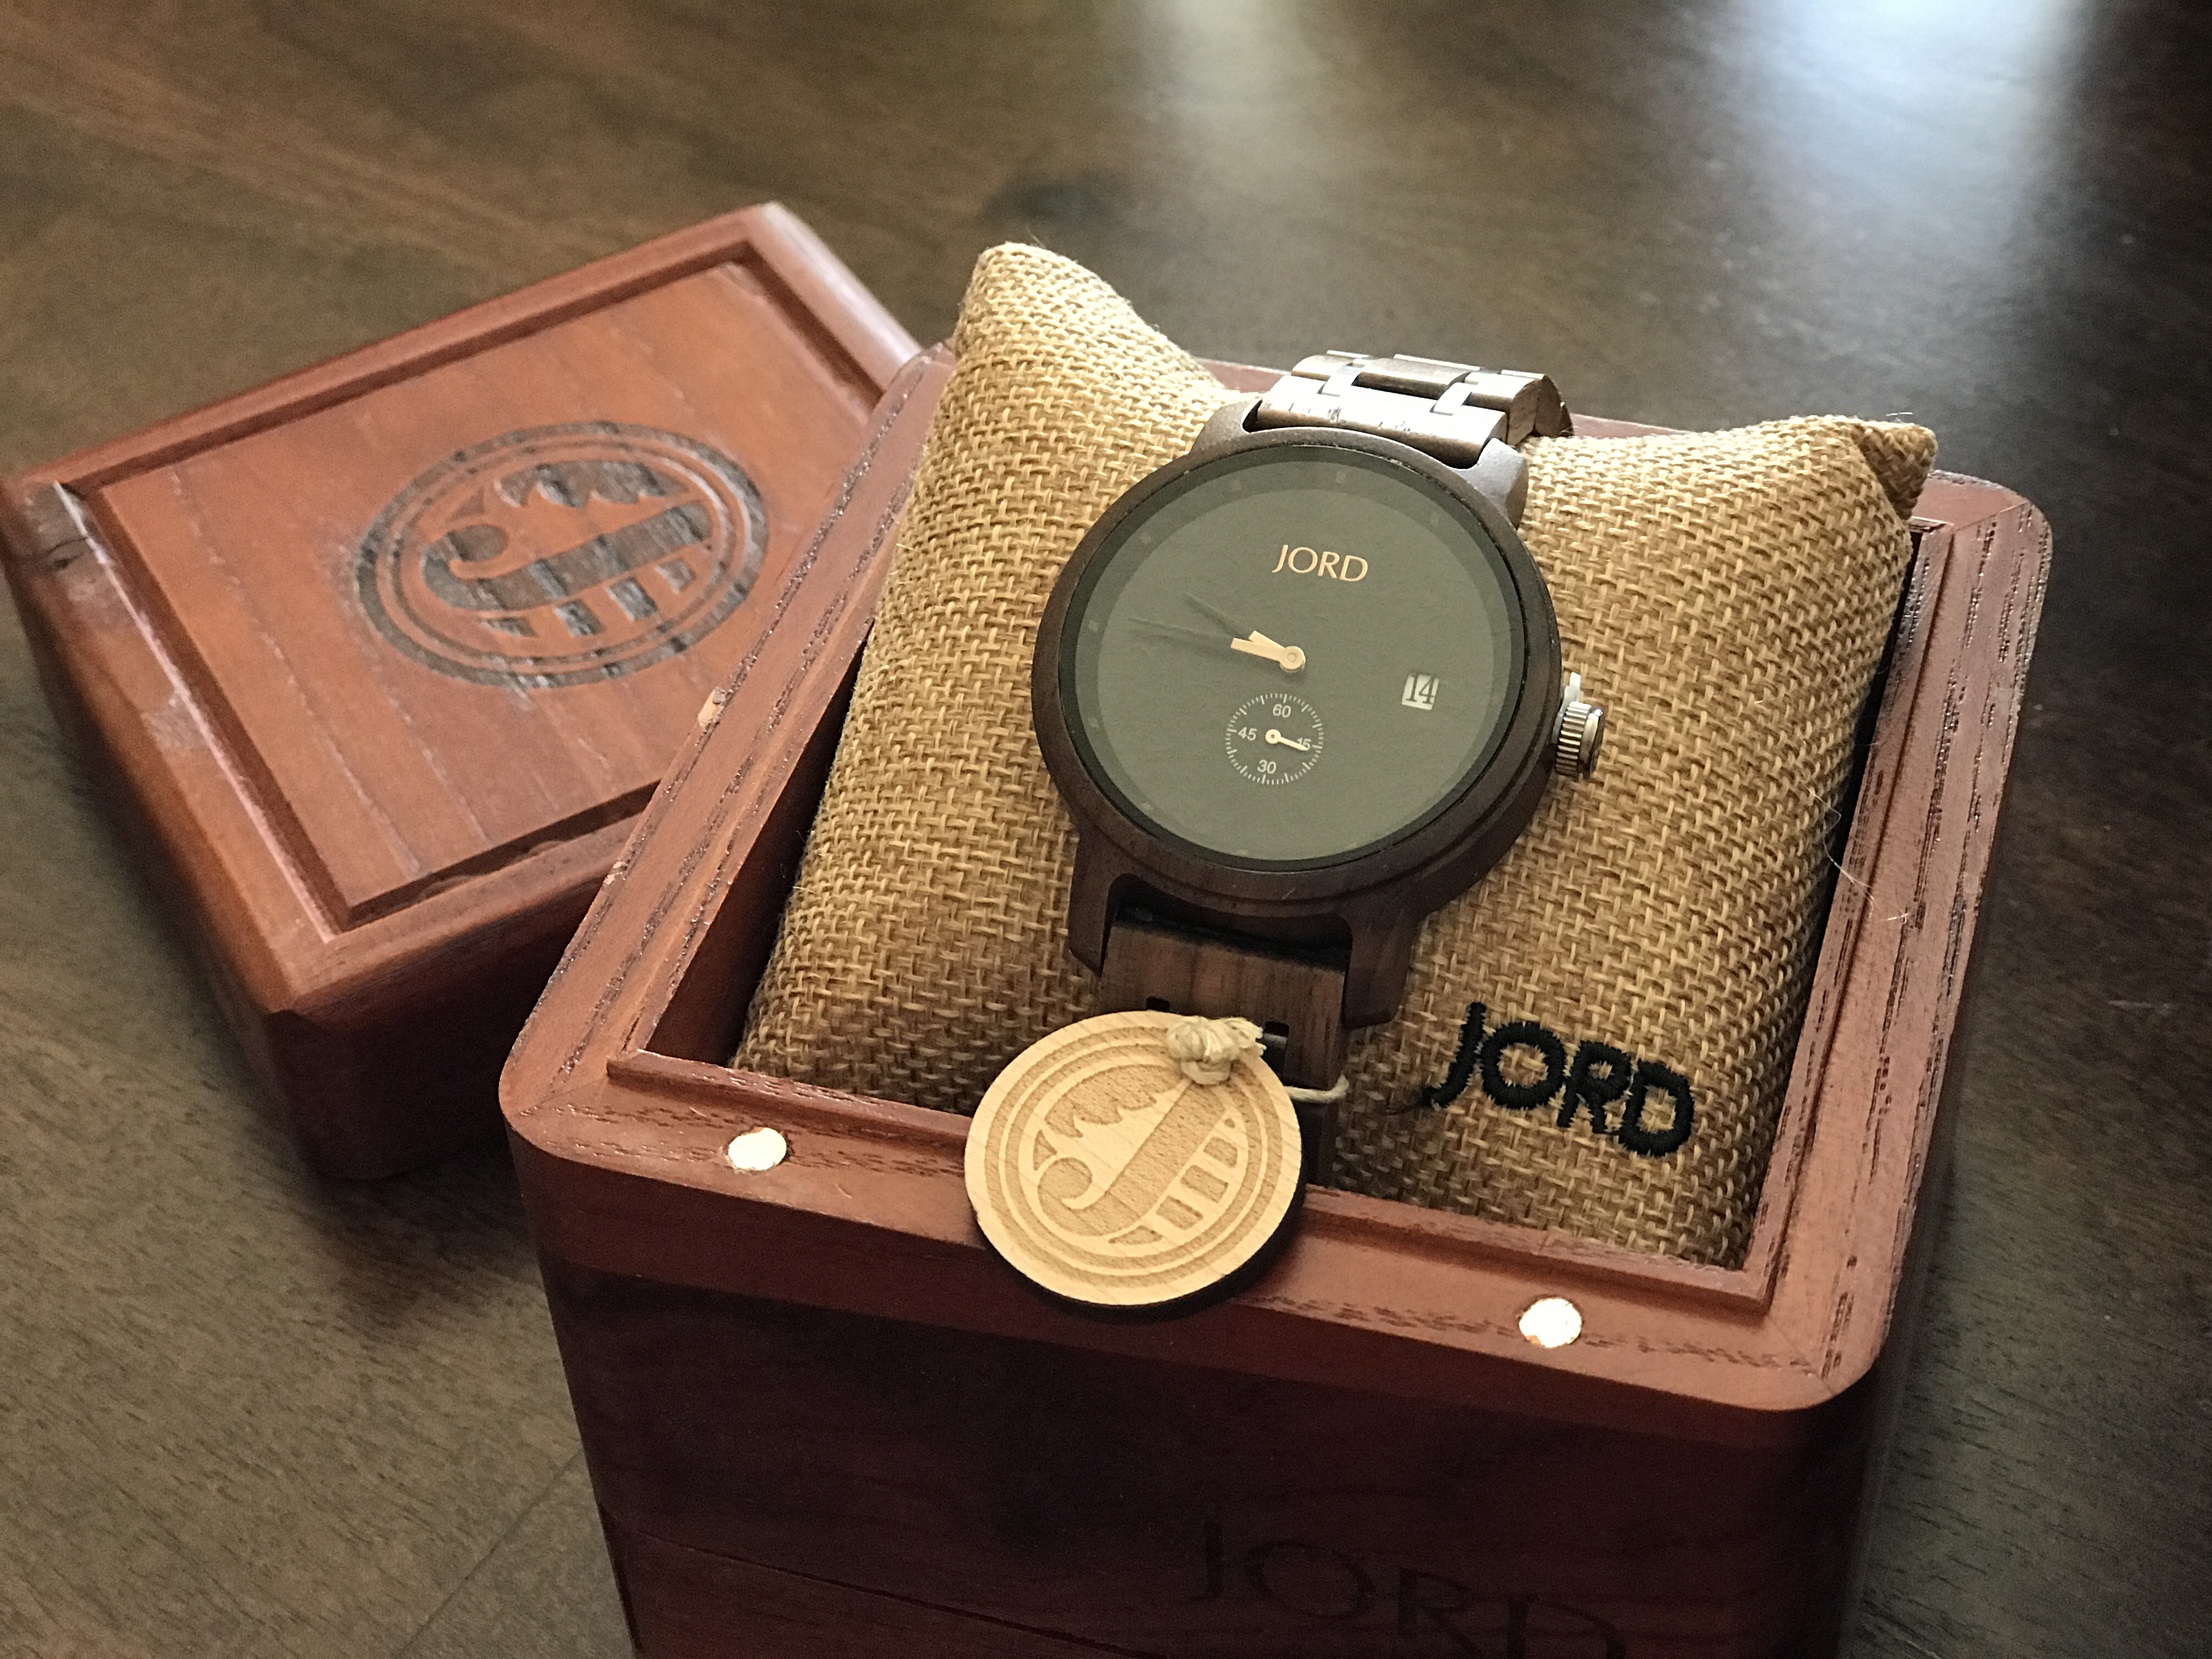 Looking for a unique Christmas gift? A Jord Wood Watch may just be the perfect Christmas gift! #Jord #woodwatches #giveaway #Christmasgiftidea #giftidea